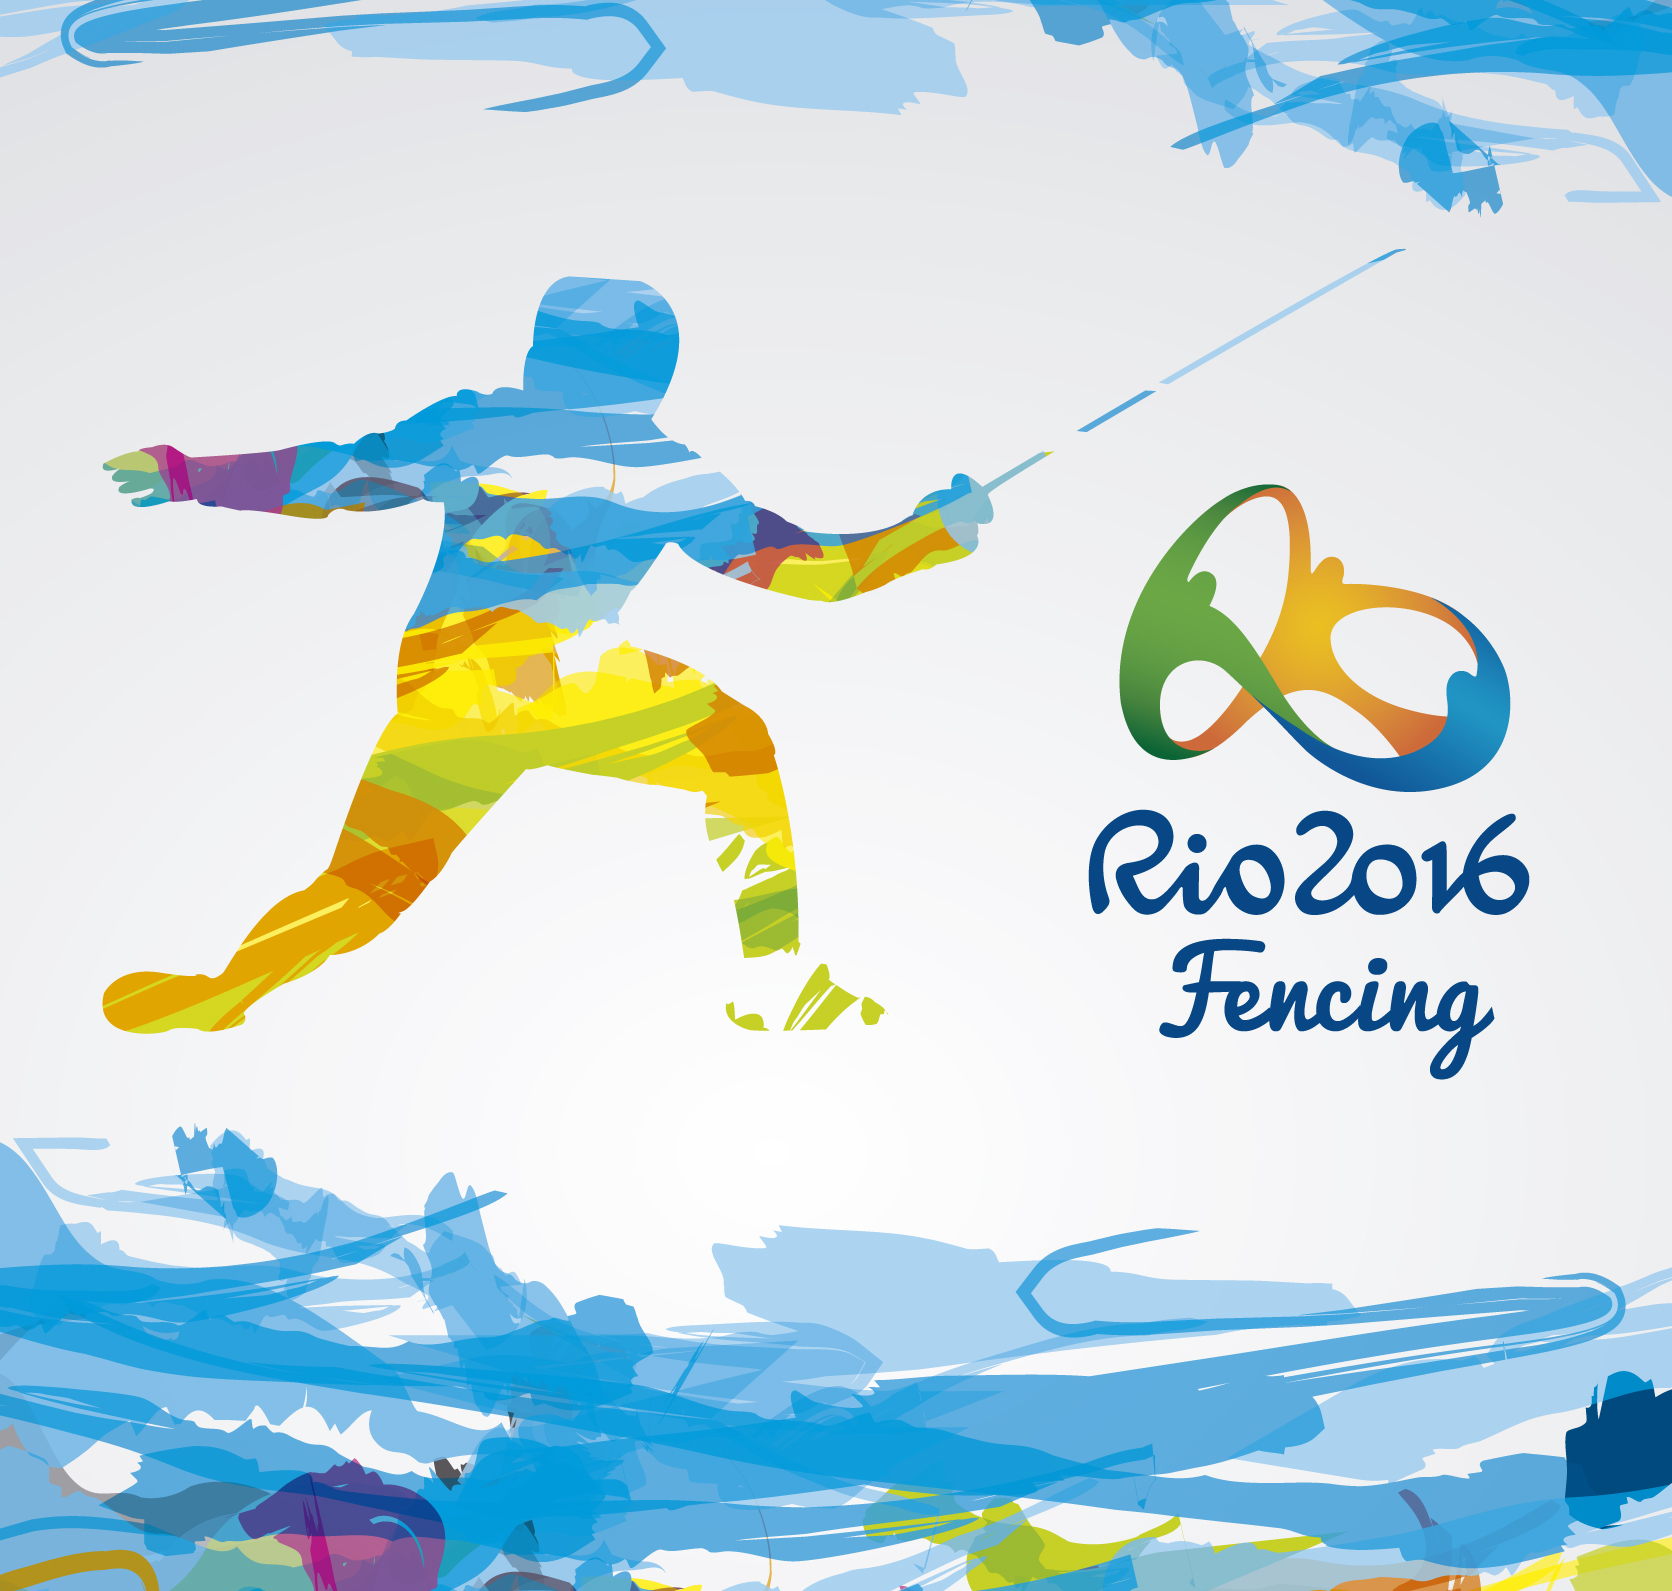 Inspired by Olympic Fencing